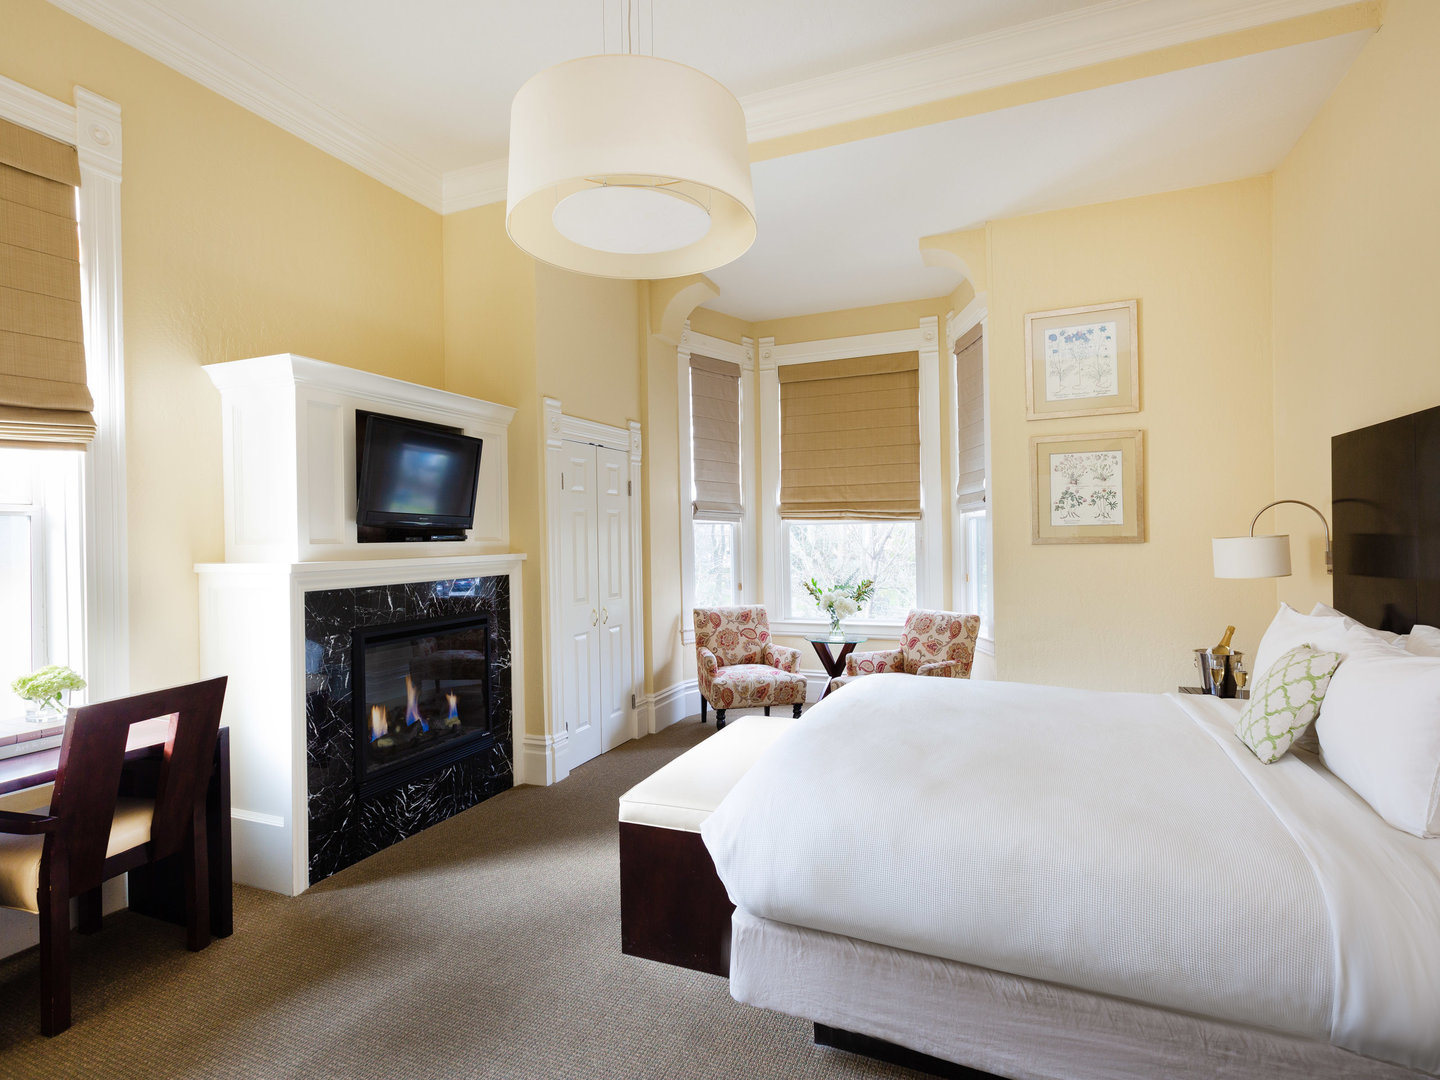 A bedroom with a large bed in a hotel room at Healdsburg Inn, A Four Sisters Inn.